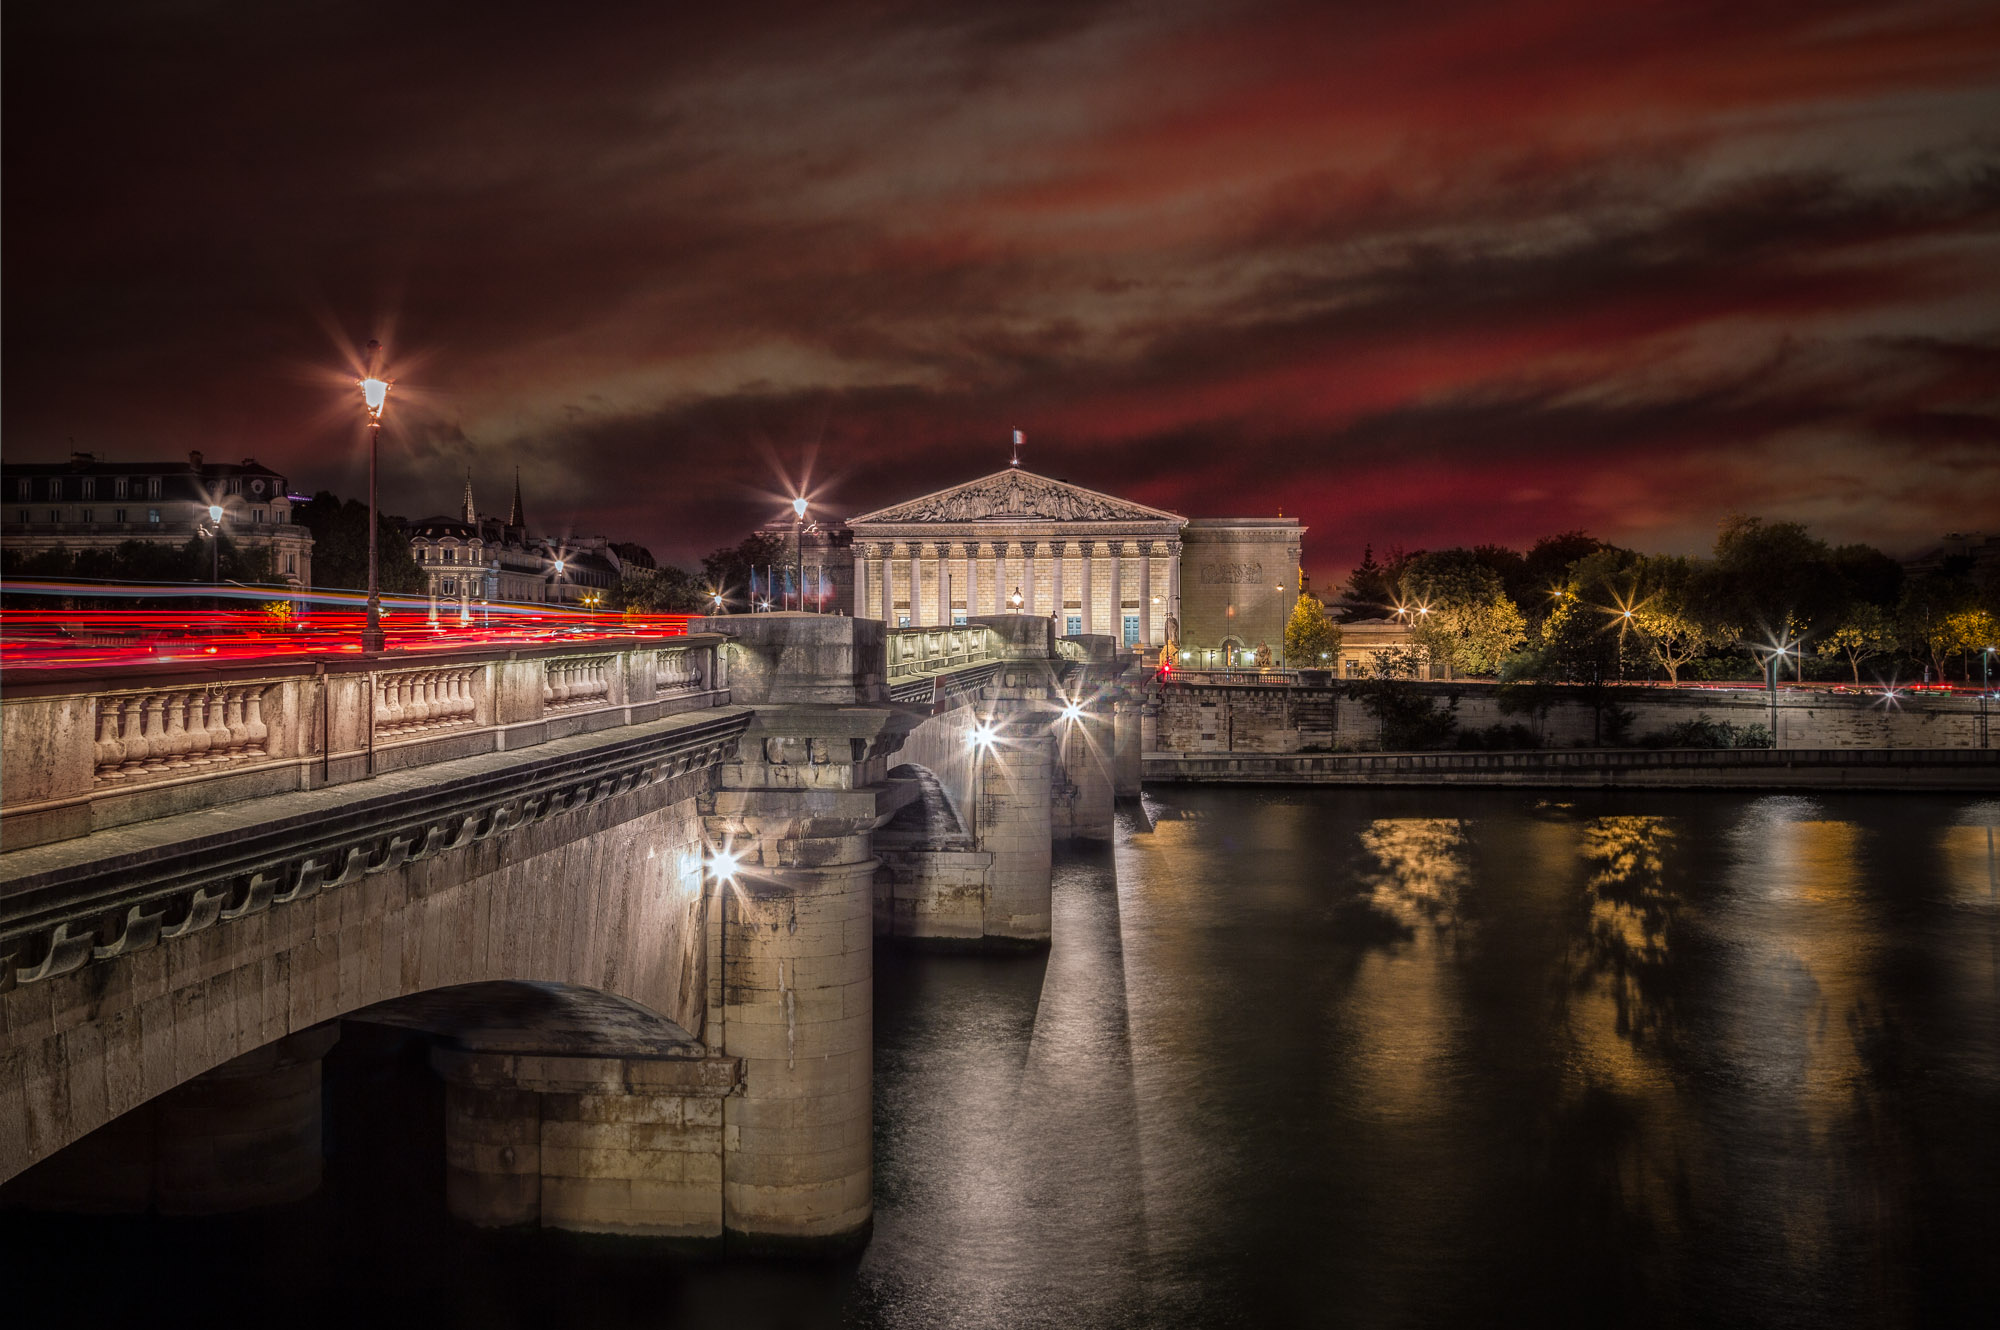 long exposure night photography of the architecture in Paris France viewed from the River Seine at sunset